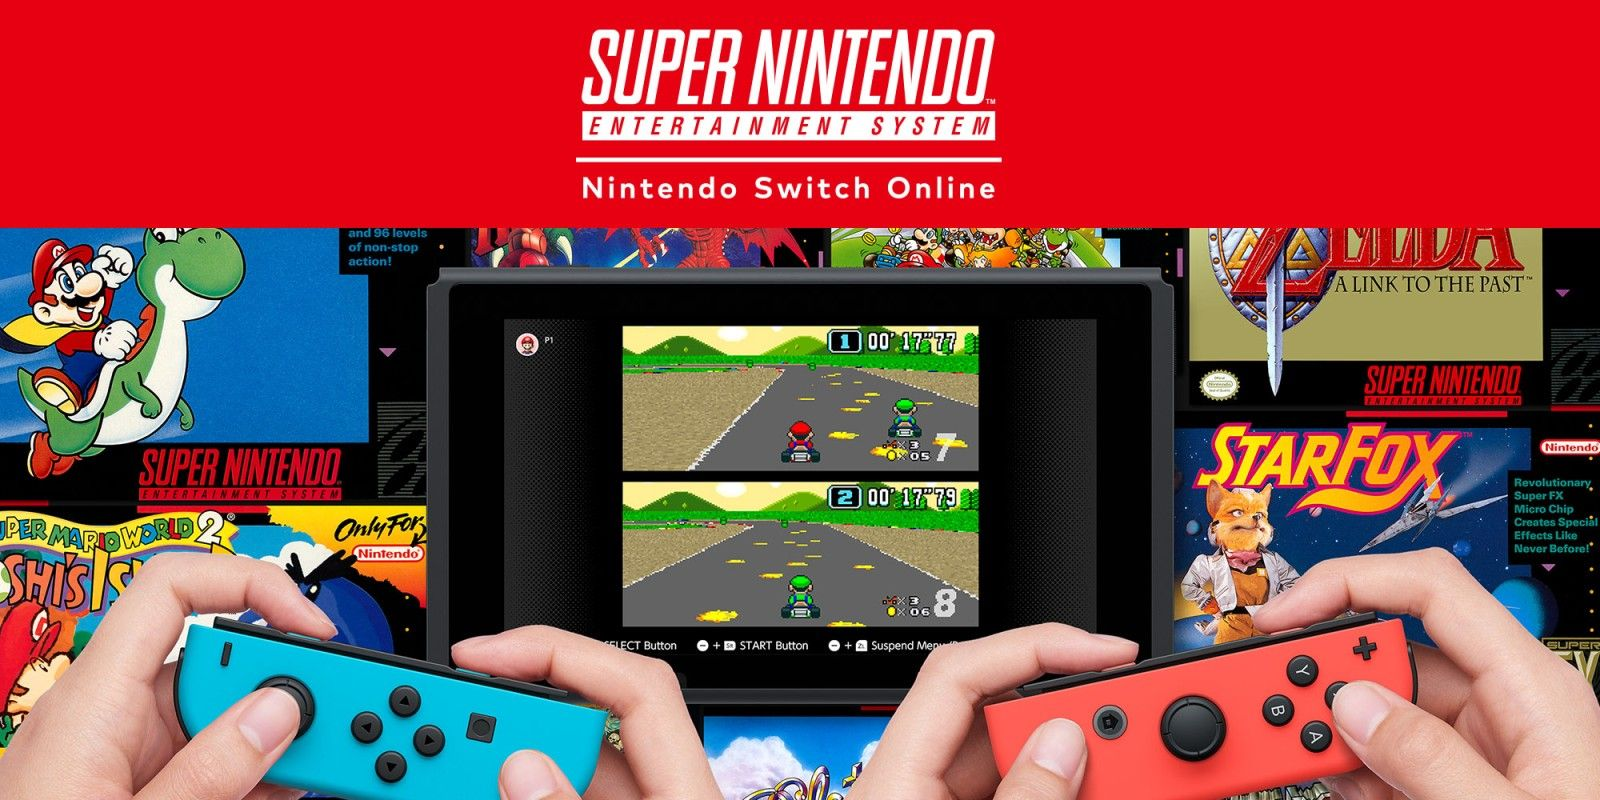 H2x1_NSwitchDS_NintendoSwitchOnline_SNESgames_image1600w.jpg